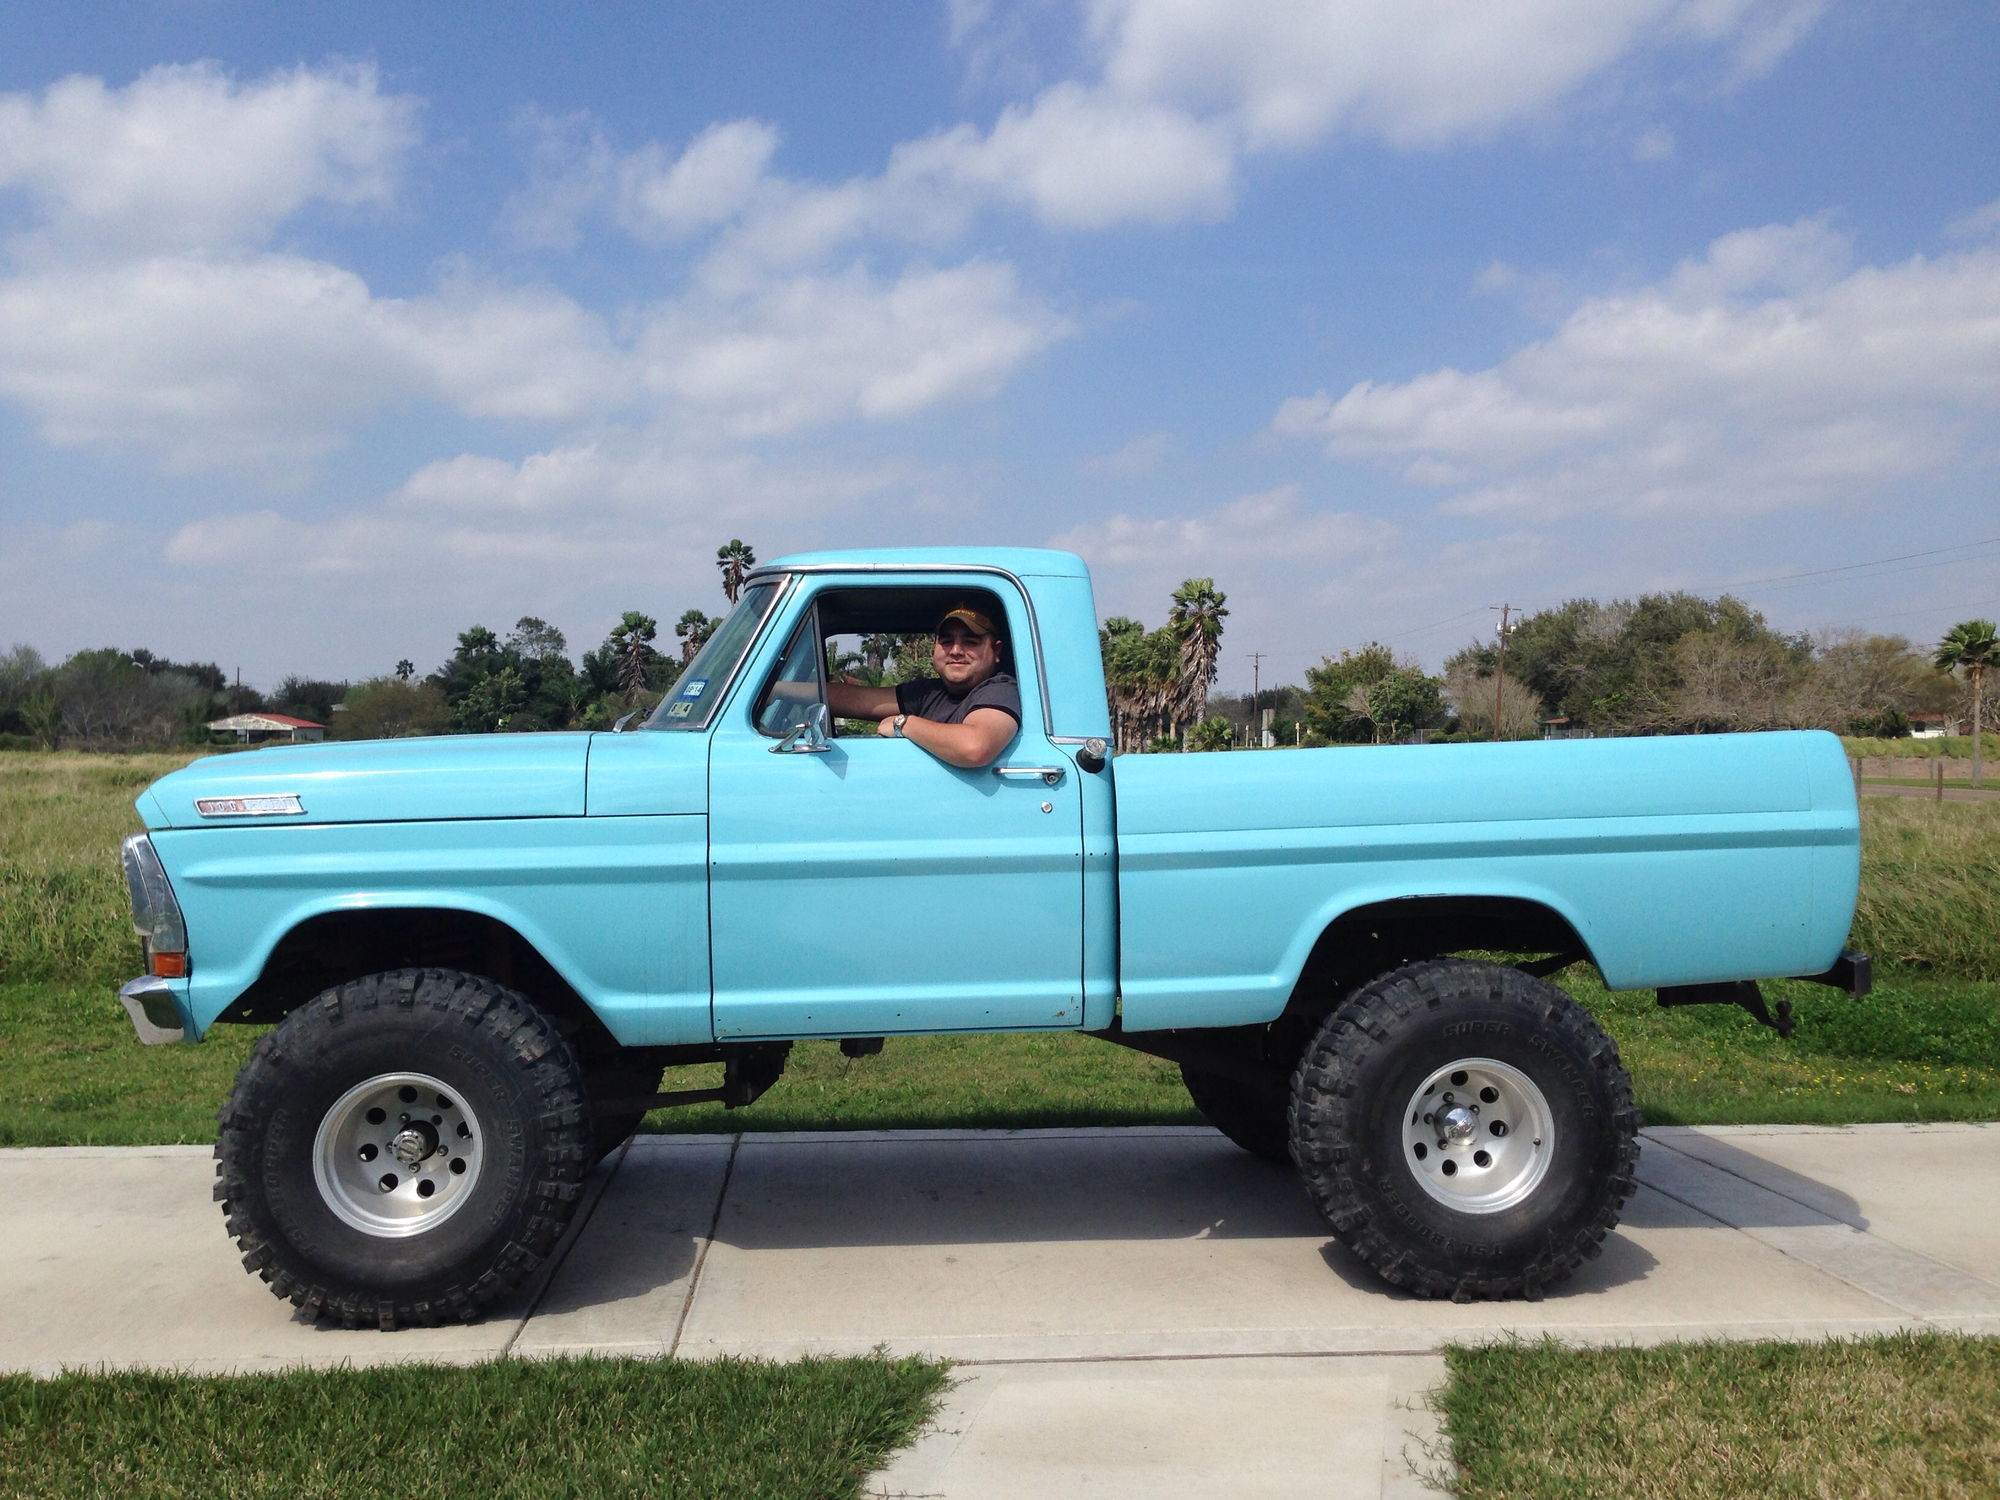 Lifted Trucks For Sale In Az >> 67-72 lifted 4x4 pics. :] - Page 10 - Ford Truck Enthusiasts Forums